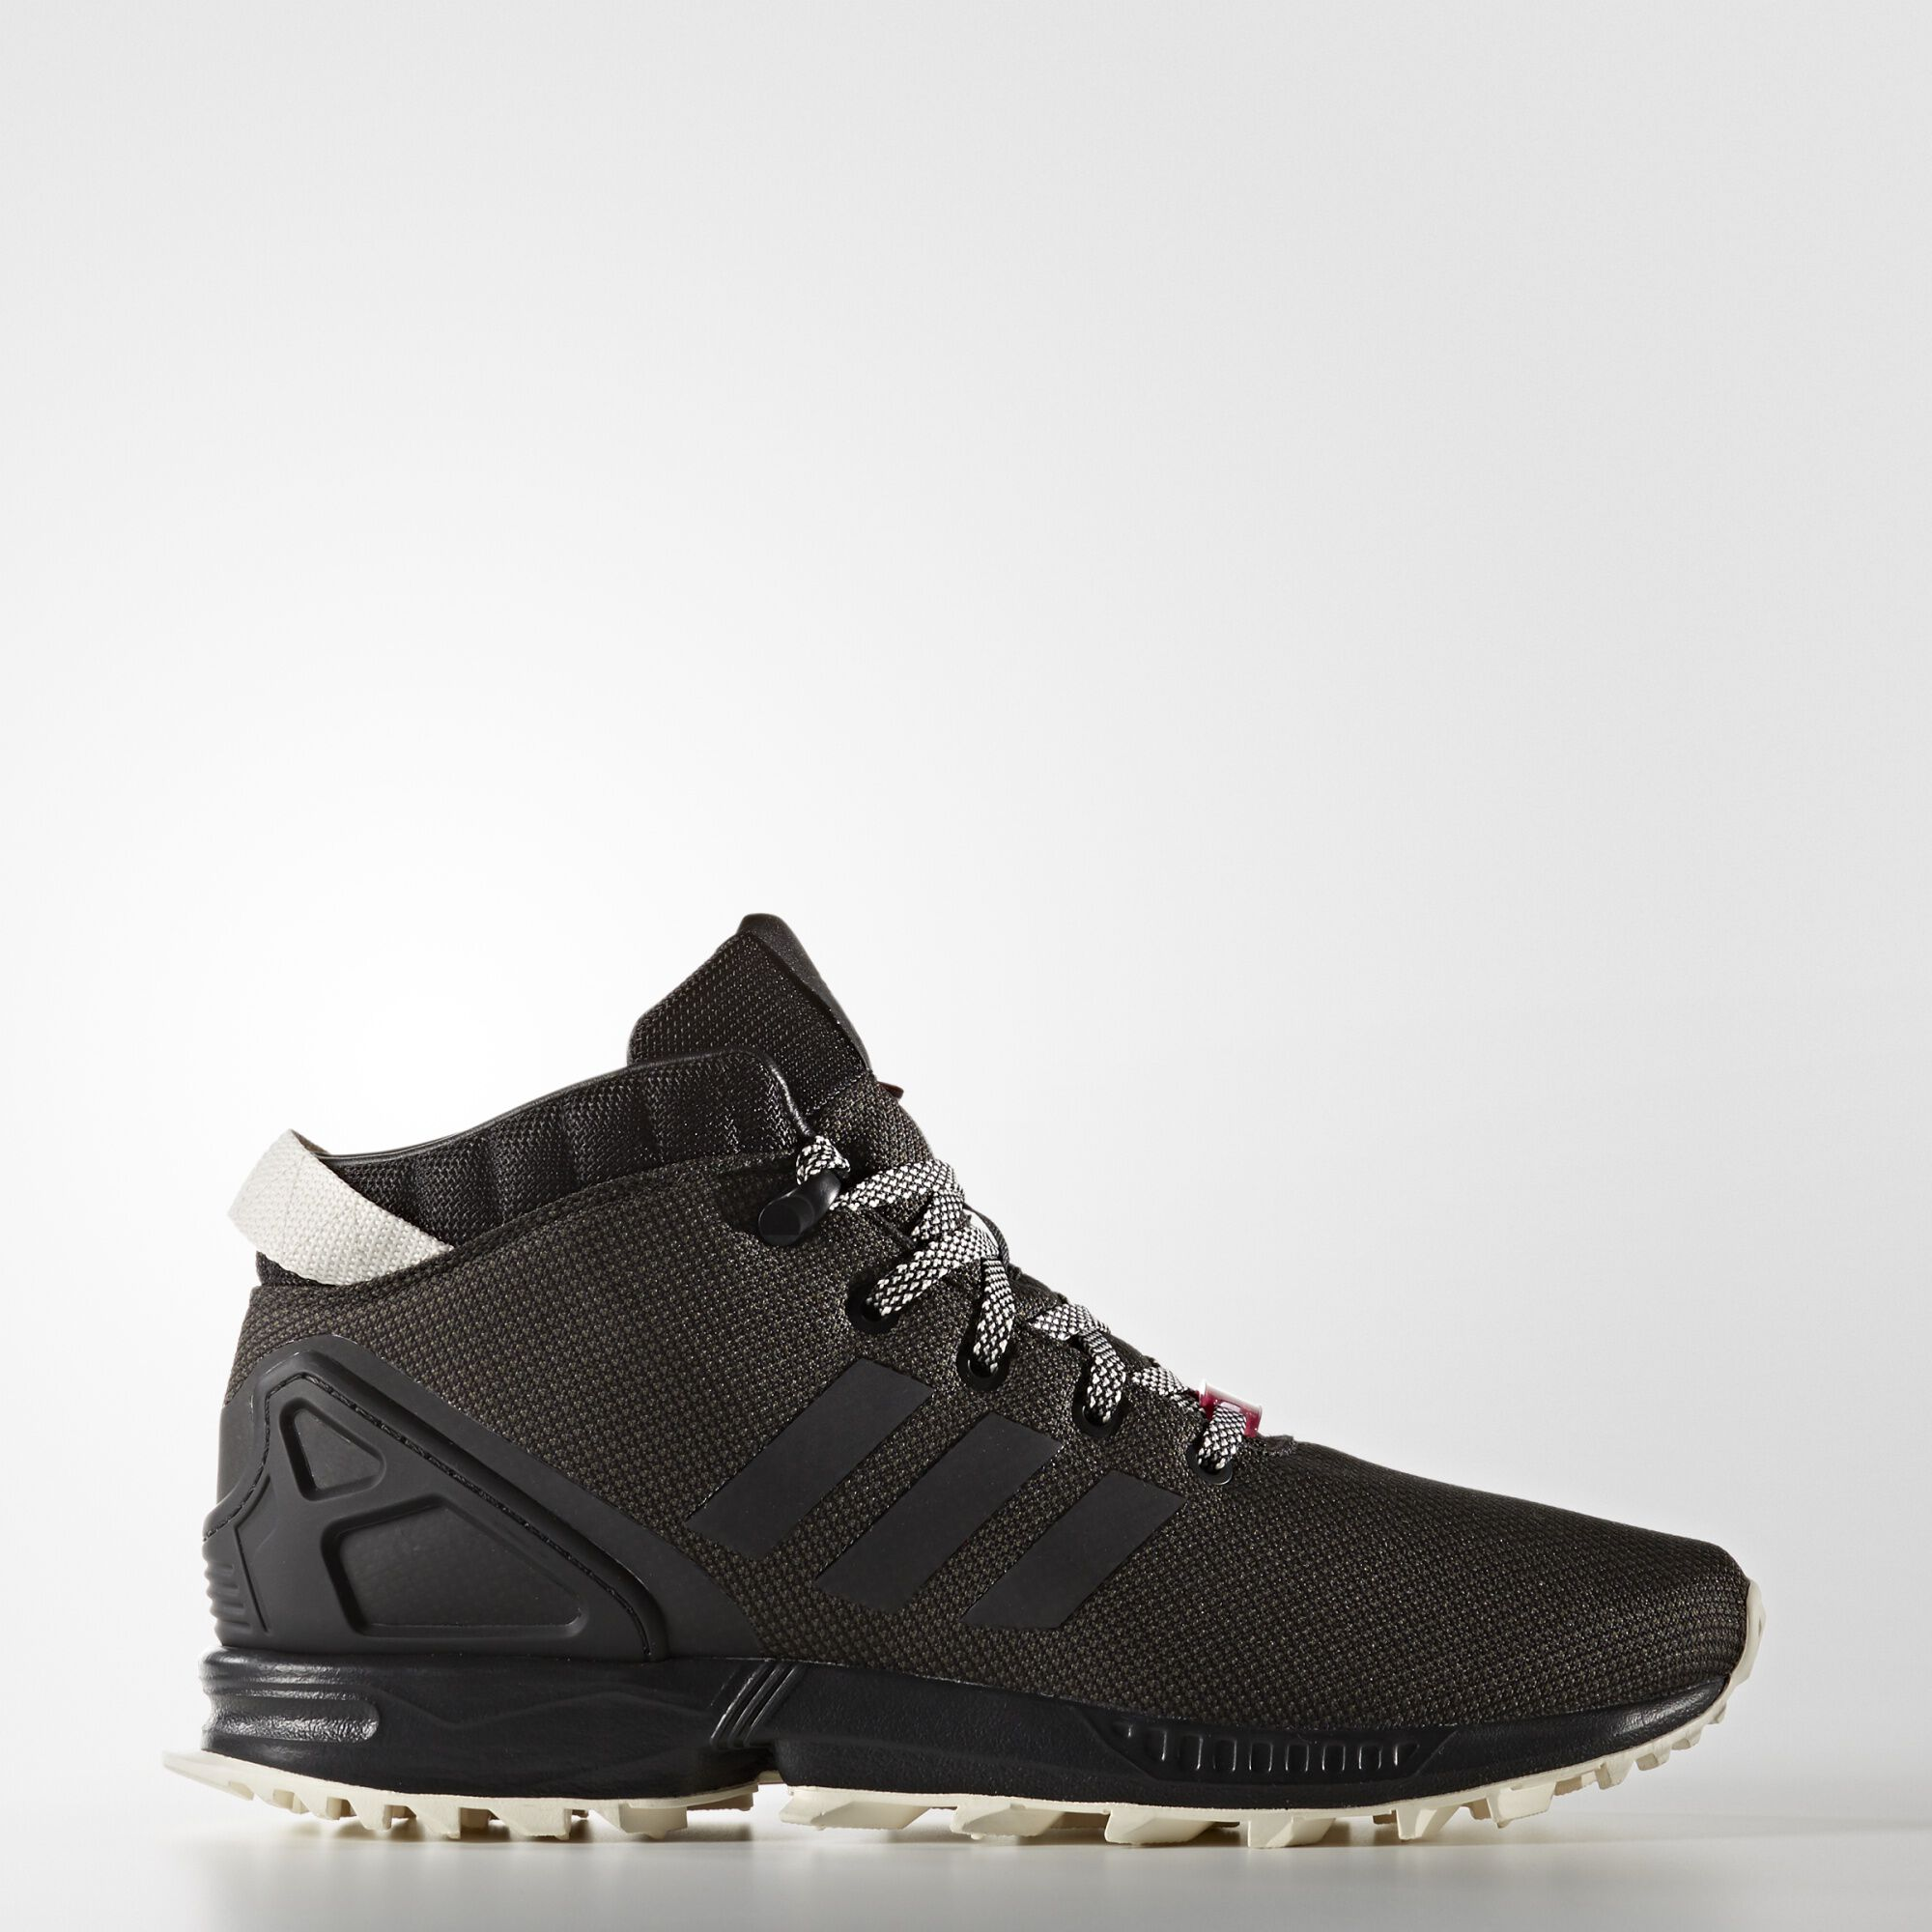 Adidas Zx Flux Shoes - Black Adidas Us